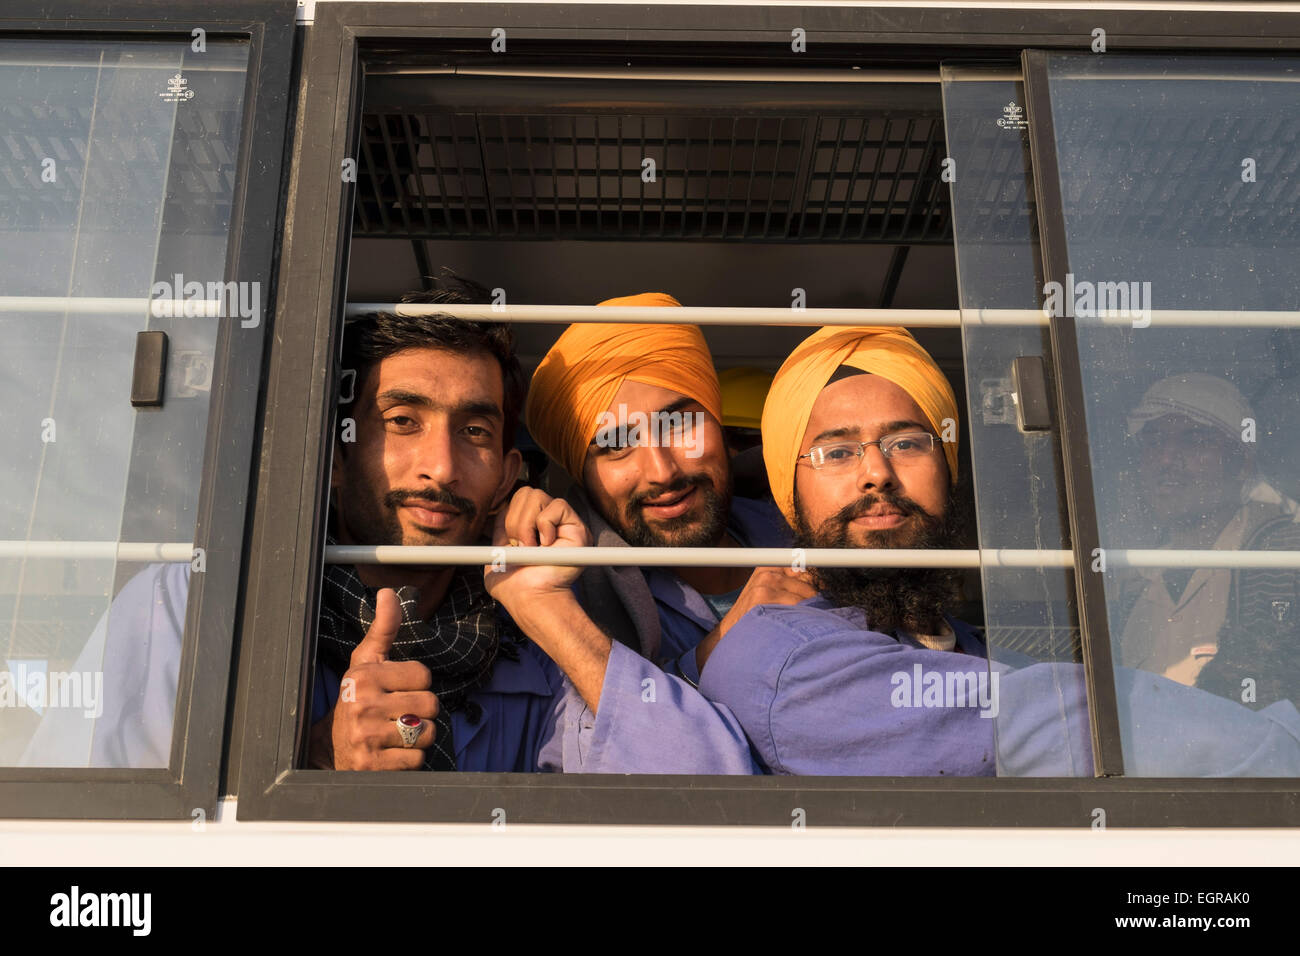 Construction workers on bus at end of working day in Dubai United Arab Emirates - Stock Image